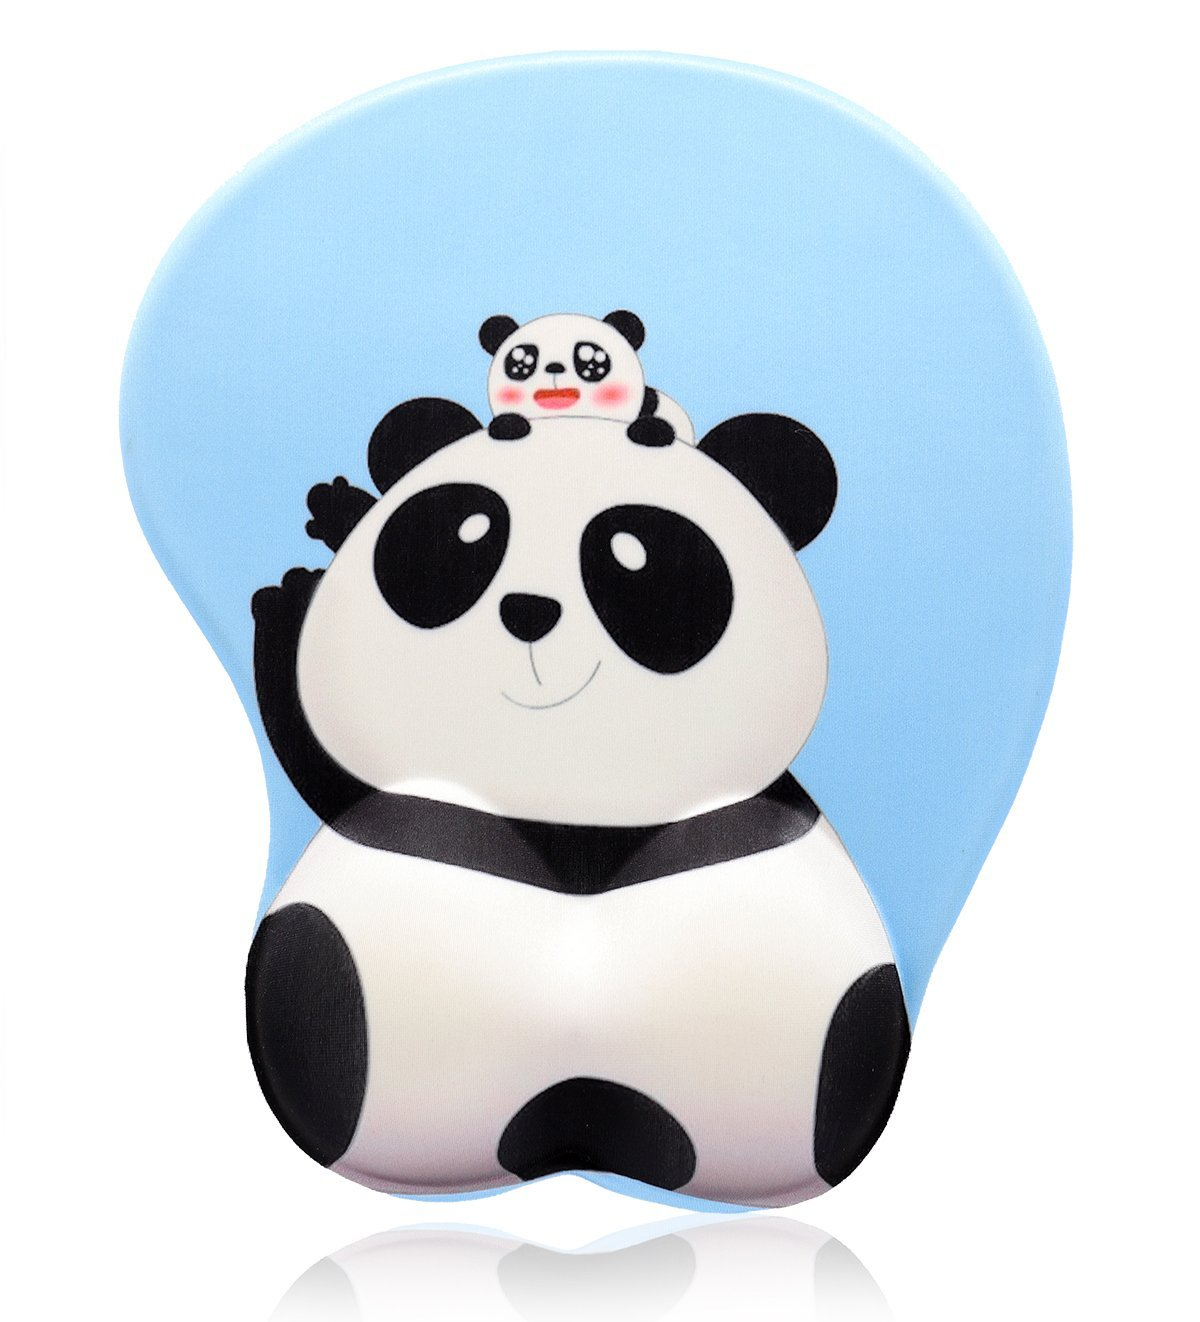 Cute Cartoon Panda Butt 3D Soft Wrist Support Gaming Office Mouse Pad (Panda) by Dream Date (Image #1)